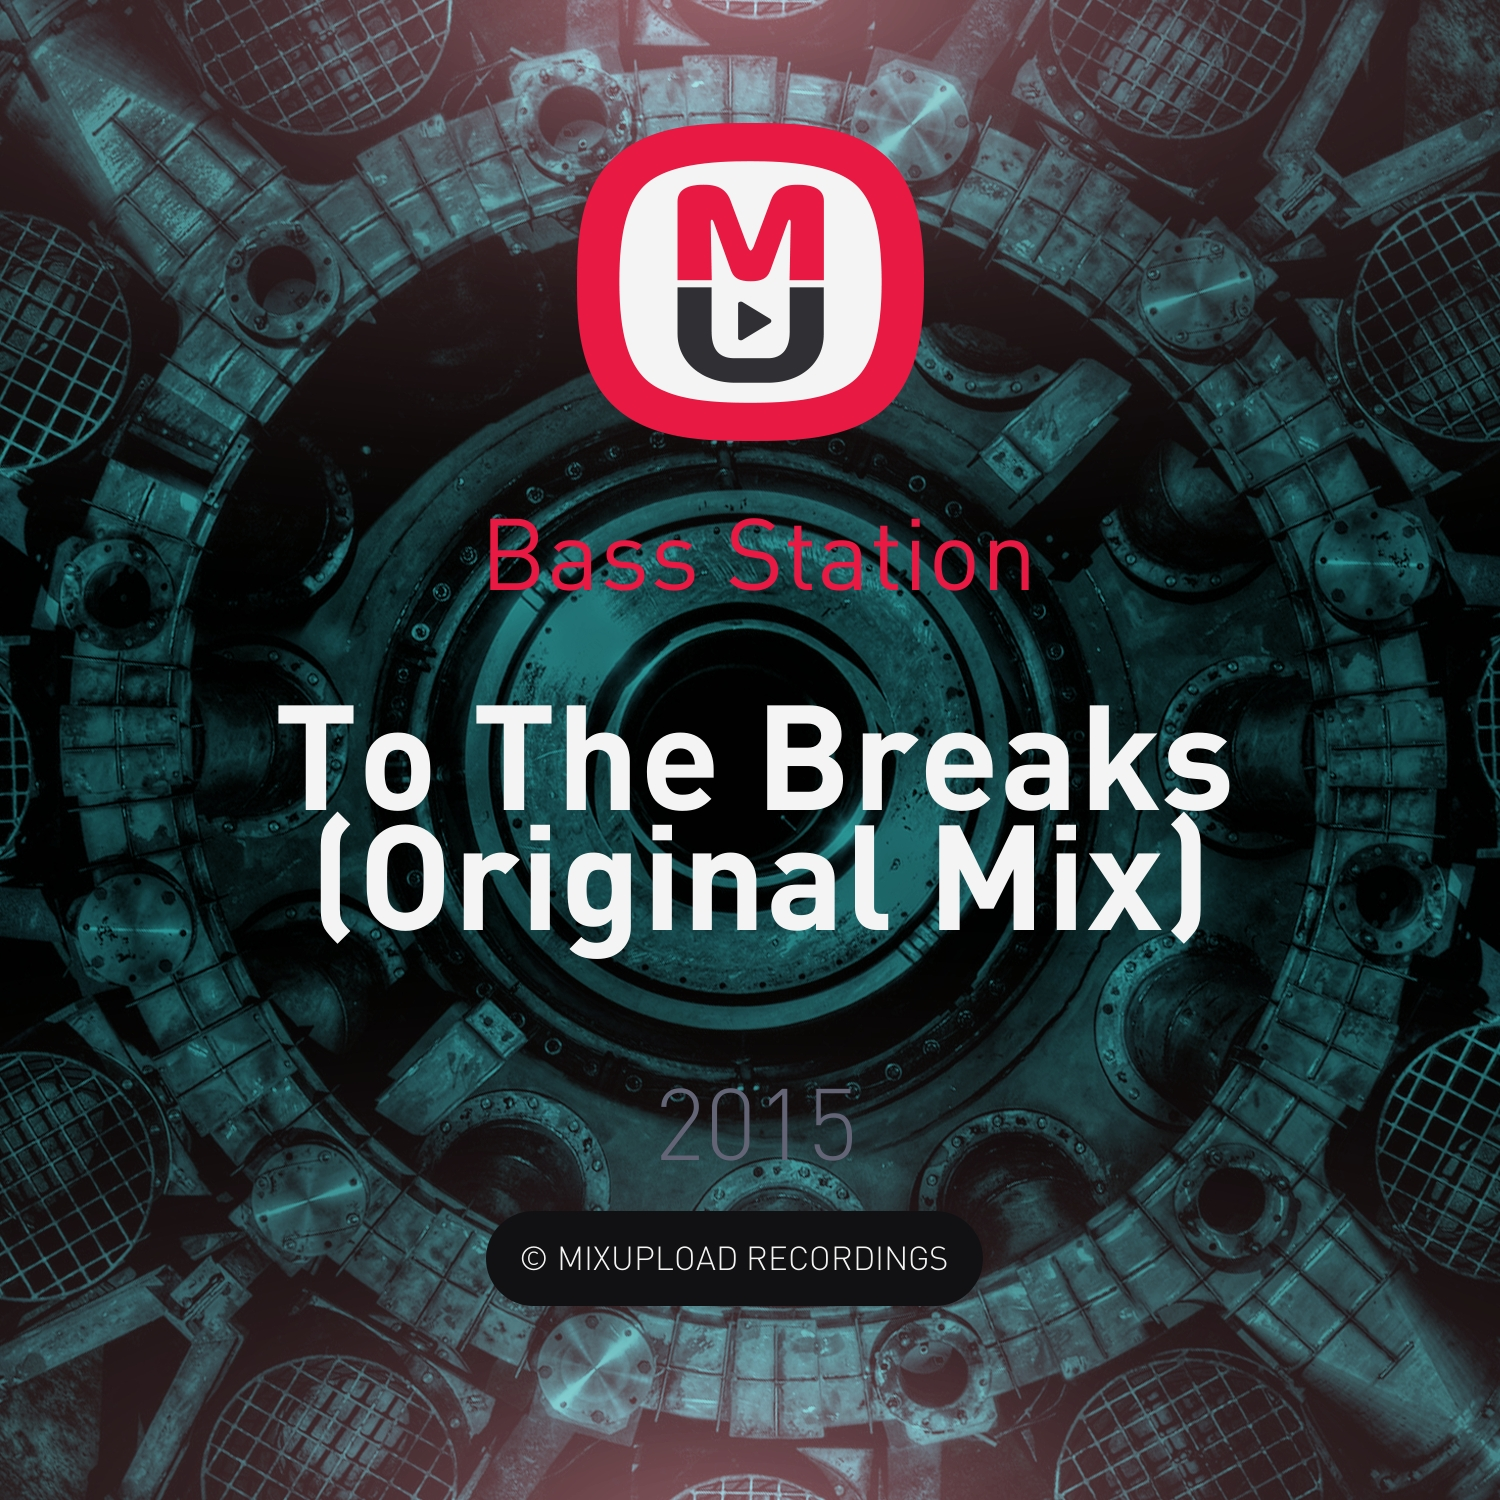 Bass Station - To The Breaks (Original Mix)